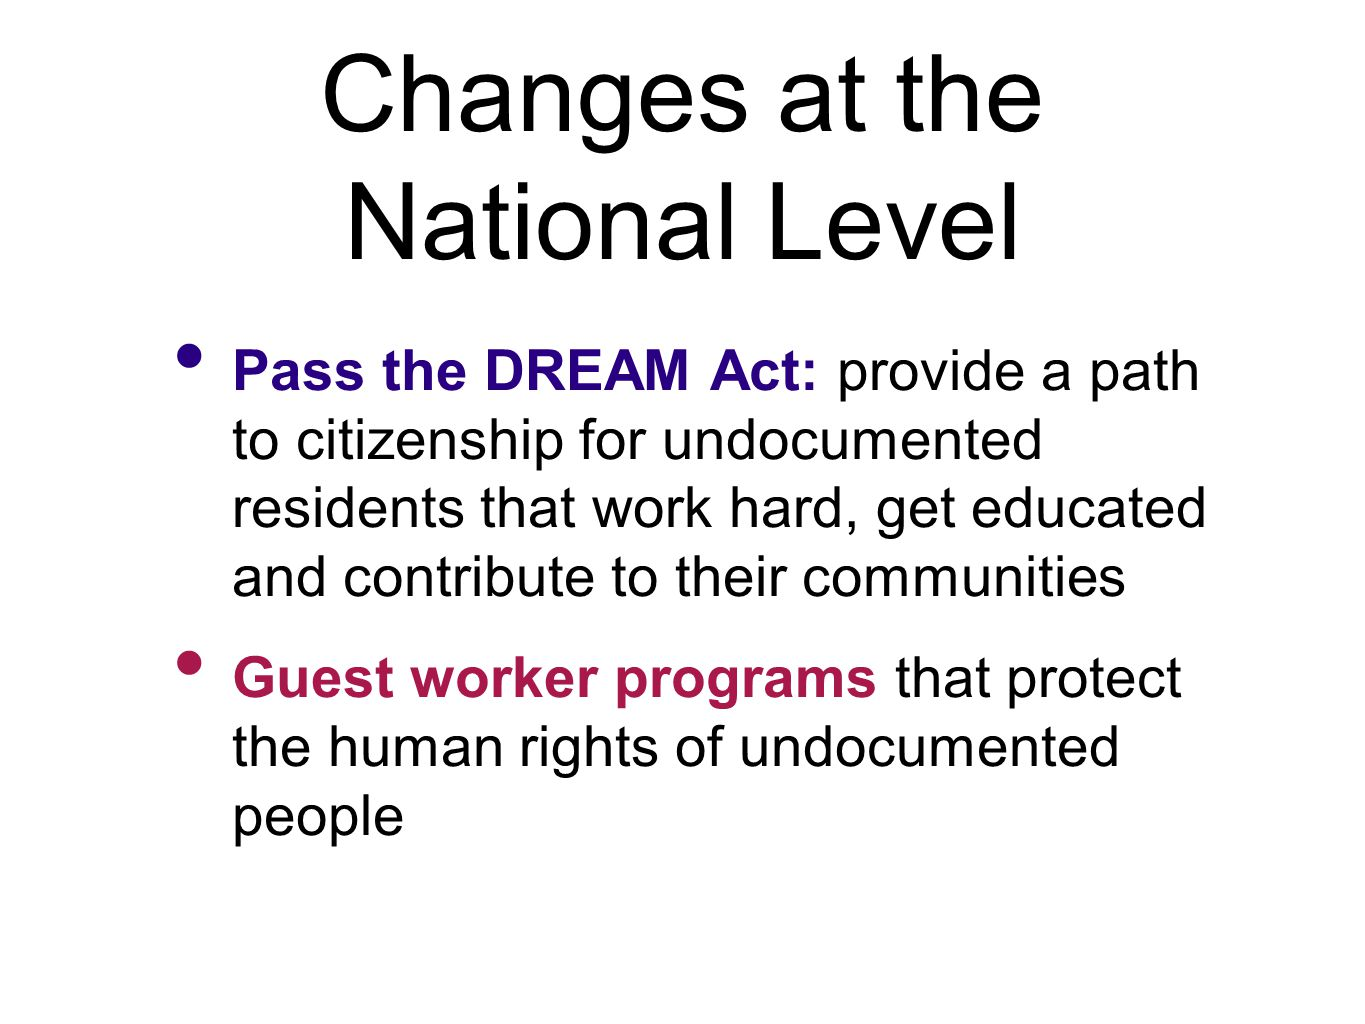 Changes at the National Level Pass the DREAM Act: provide a path to citizenship for undocumented residents that work hard, get educated and contribute to their communities Guest worker programs that protect the human rights of undocumented people